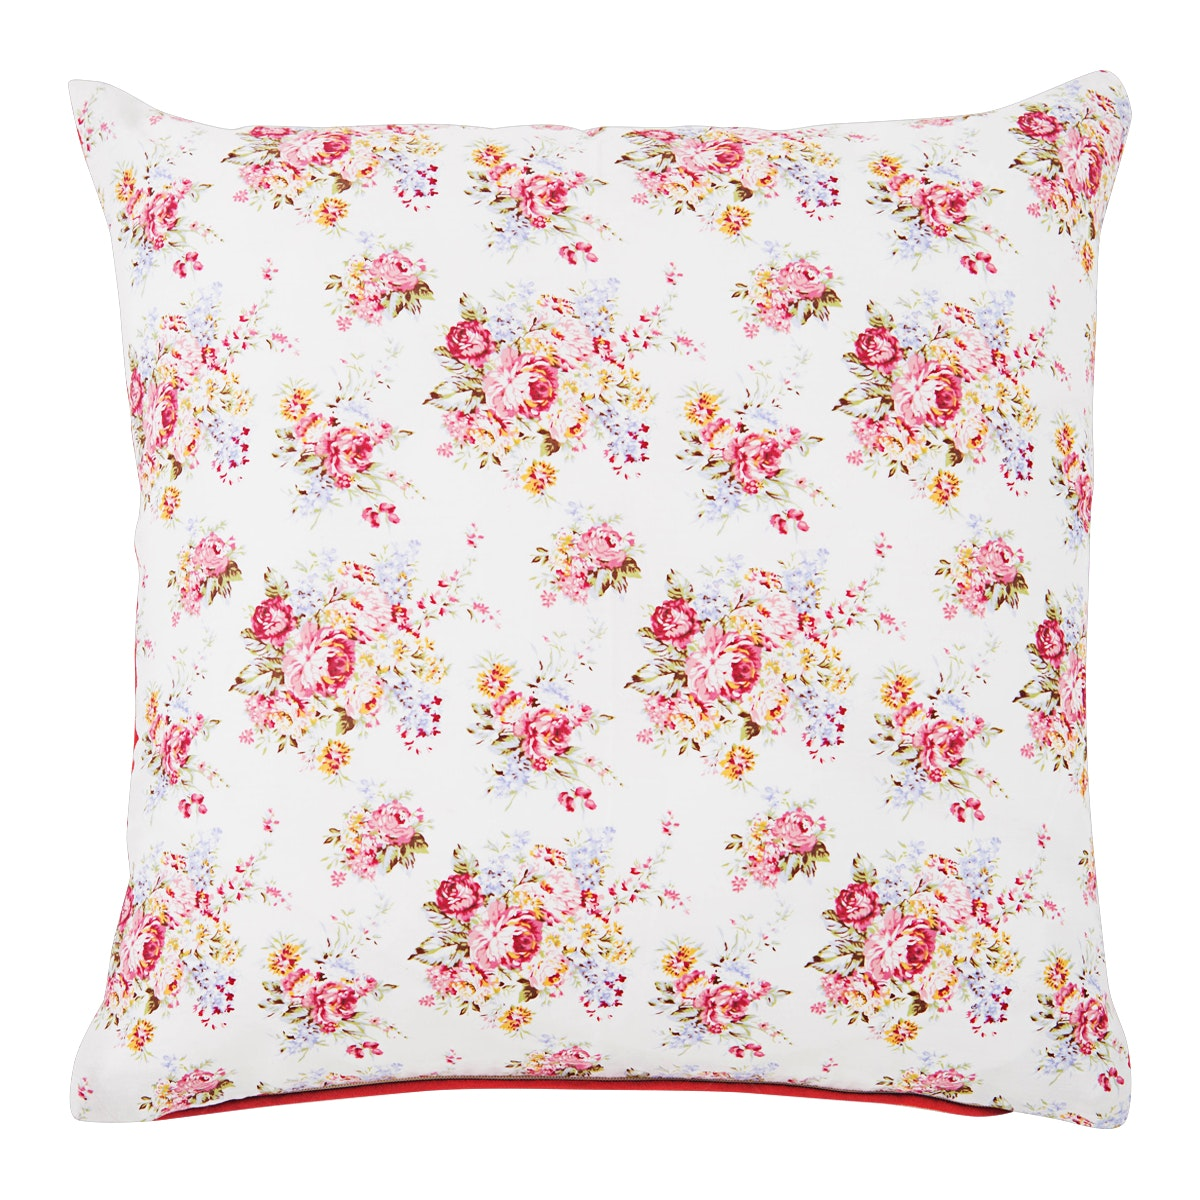 Maiika Flower Cover Cushion 45x45cm